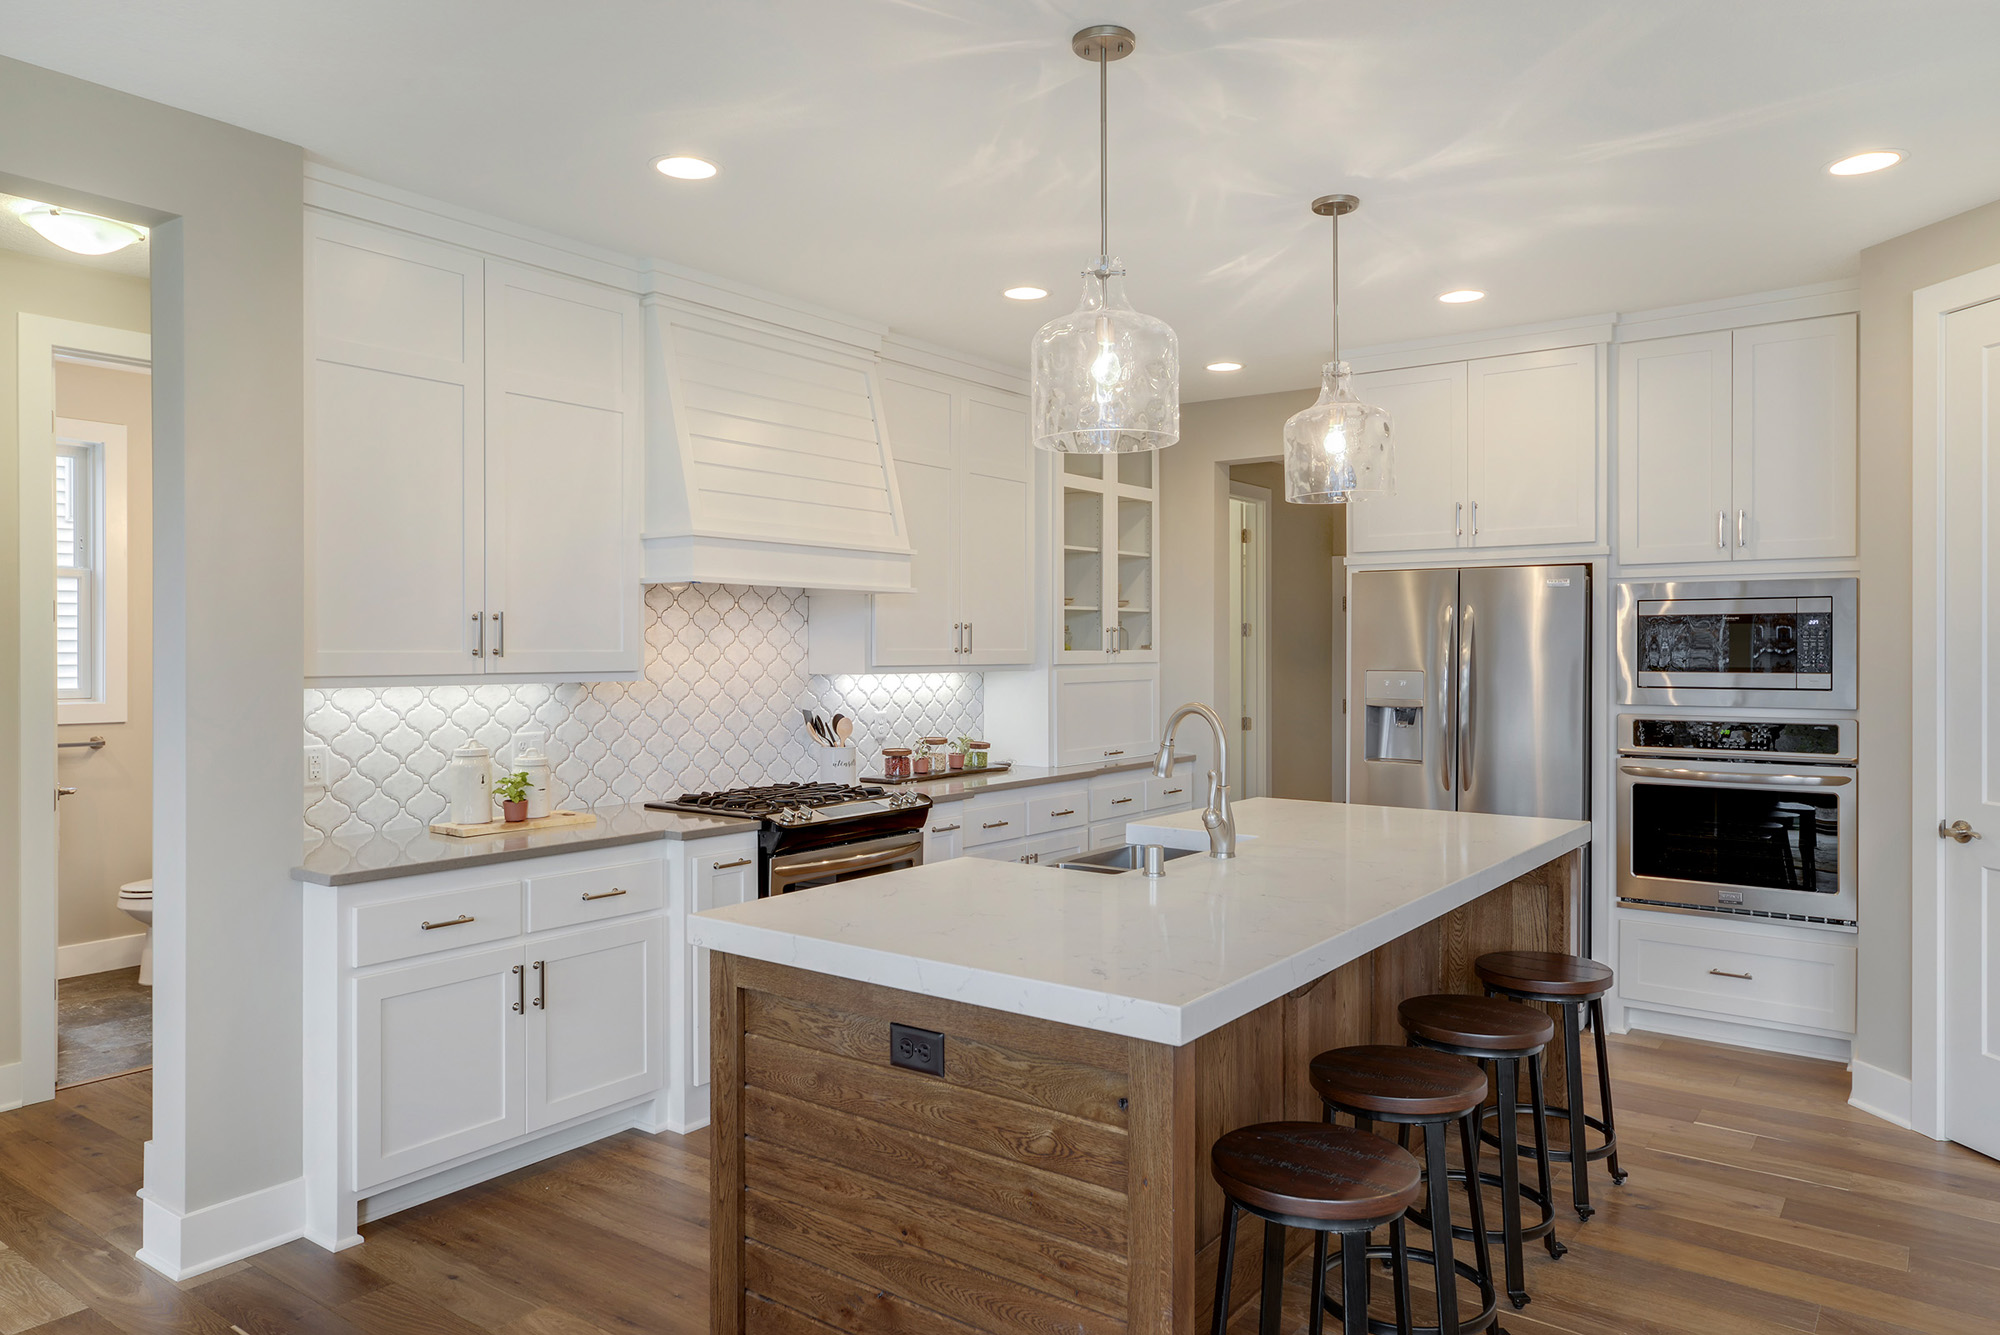 Great Kitchen Plan with Cabinets to ceiling